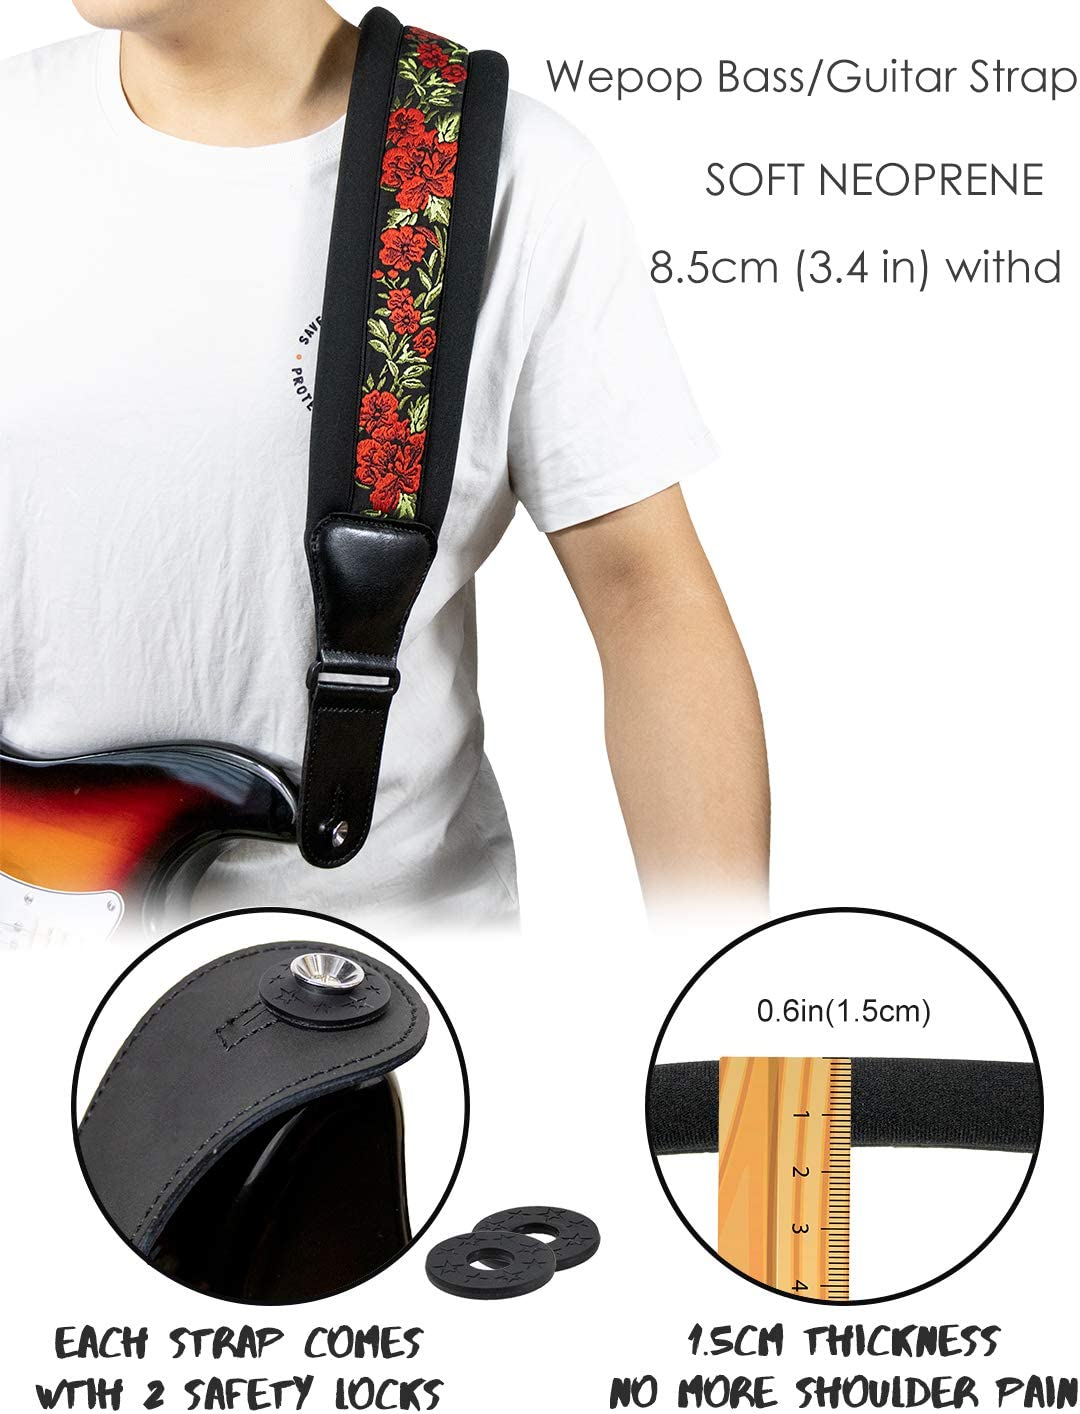 101 Guitar Strap Elastic Soft Comfortable Neoprene Leather 3.4in Bass Acoustic Electric Guitar